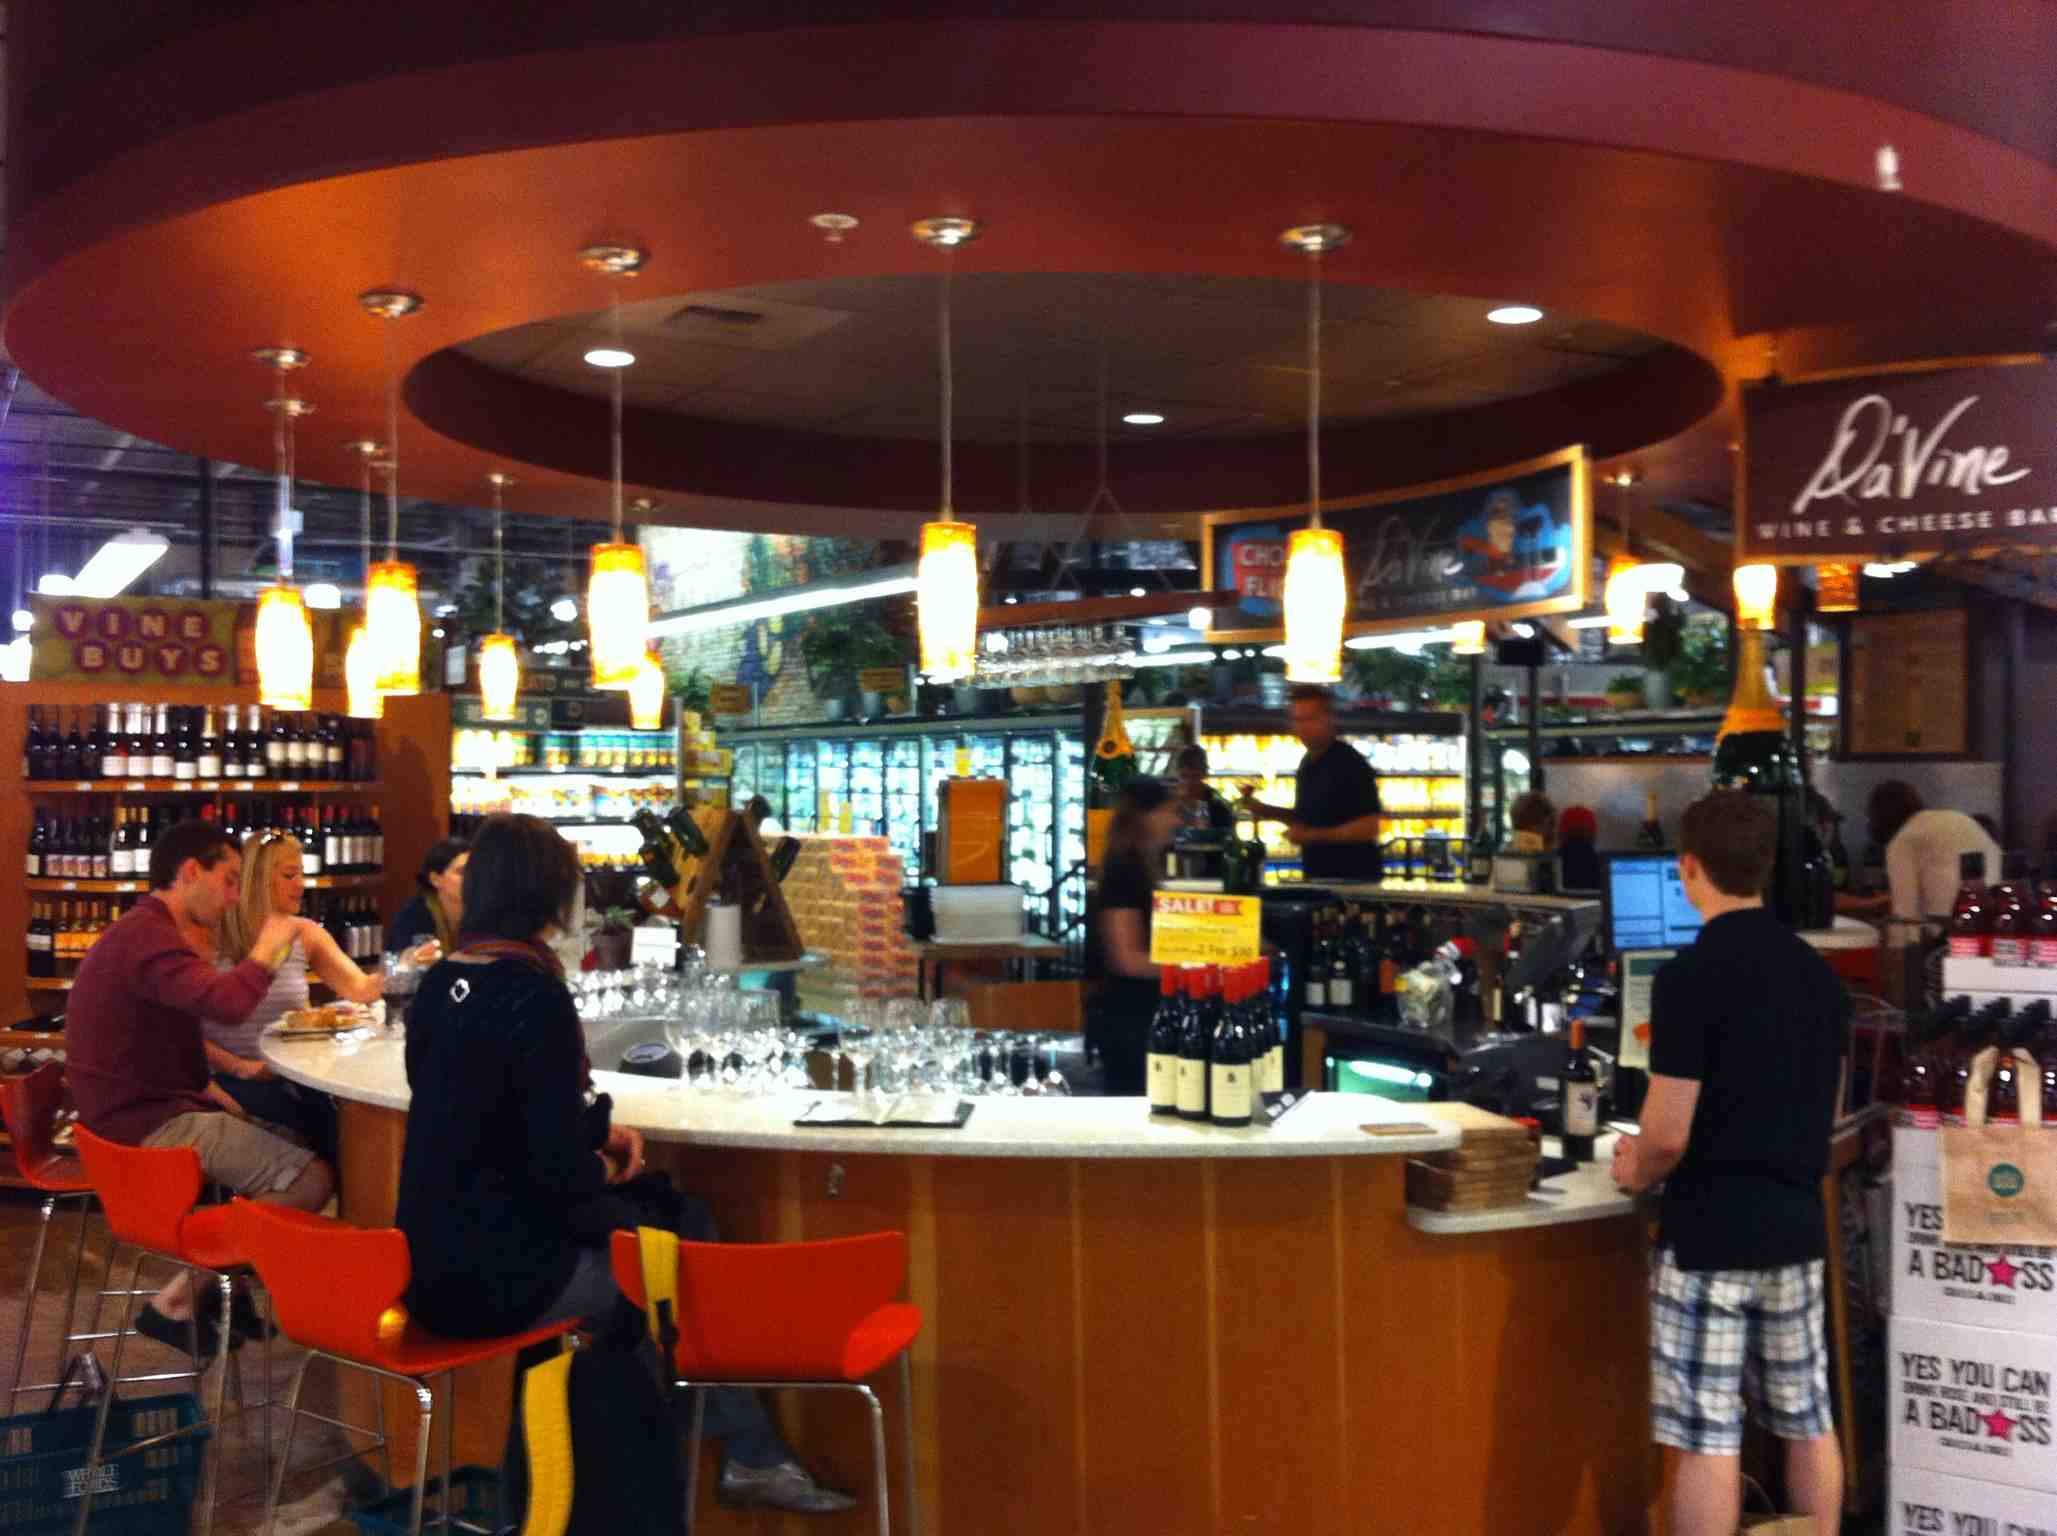 The wine bar at Whole Foods store Lincoln Park, Chicago.  There was a nice ambience, even though it was in the middle of a grocery store.  There was great people watching not only at the bar but in the yogurt section as one lady had to climb up on the coolers to check out product at the top, almost falling in as she did so.